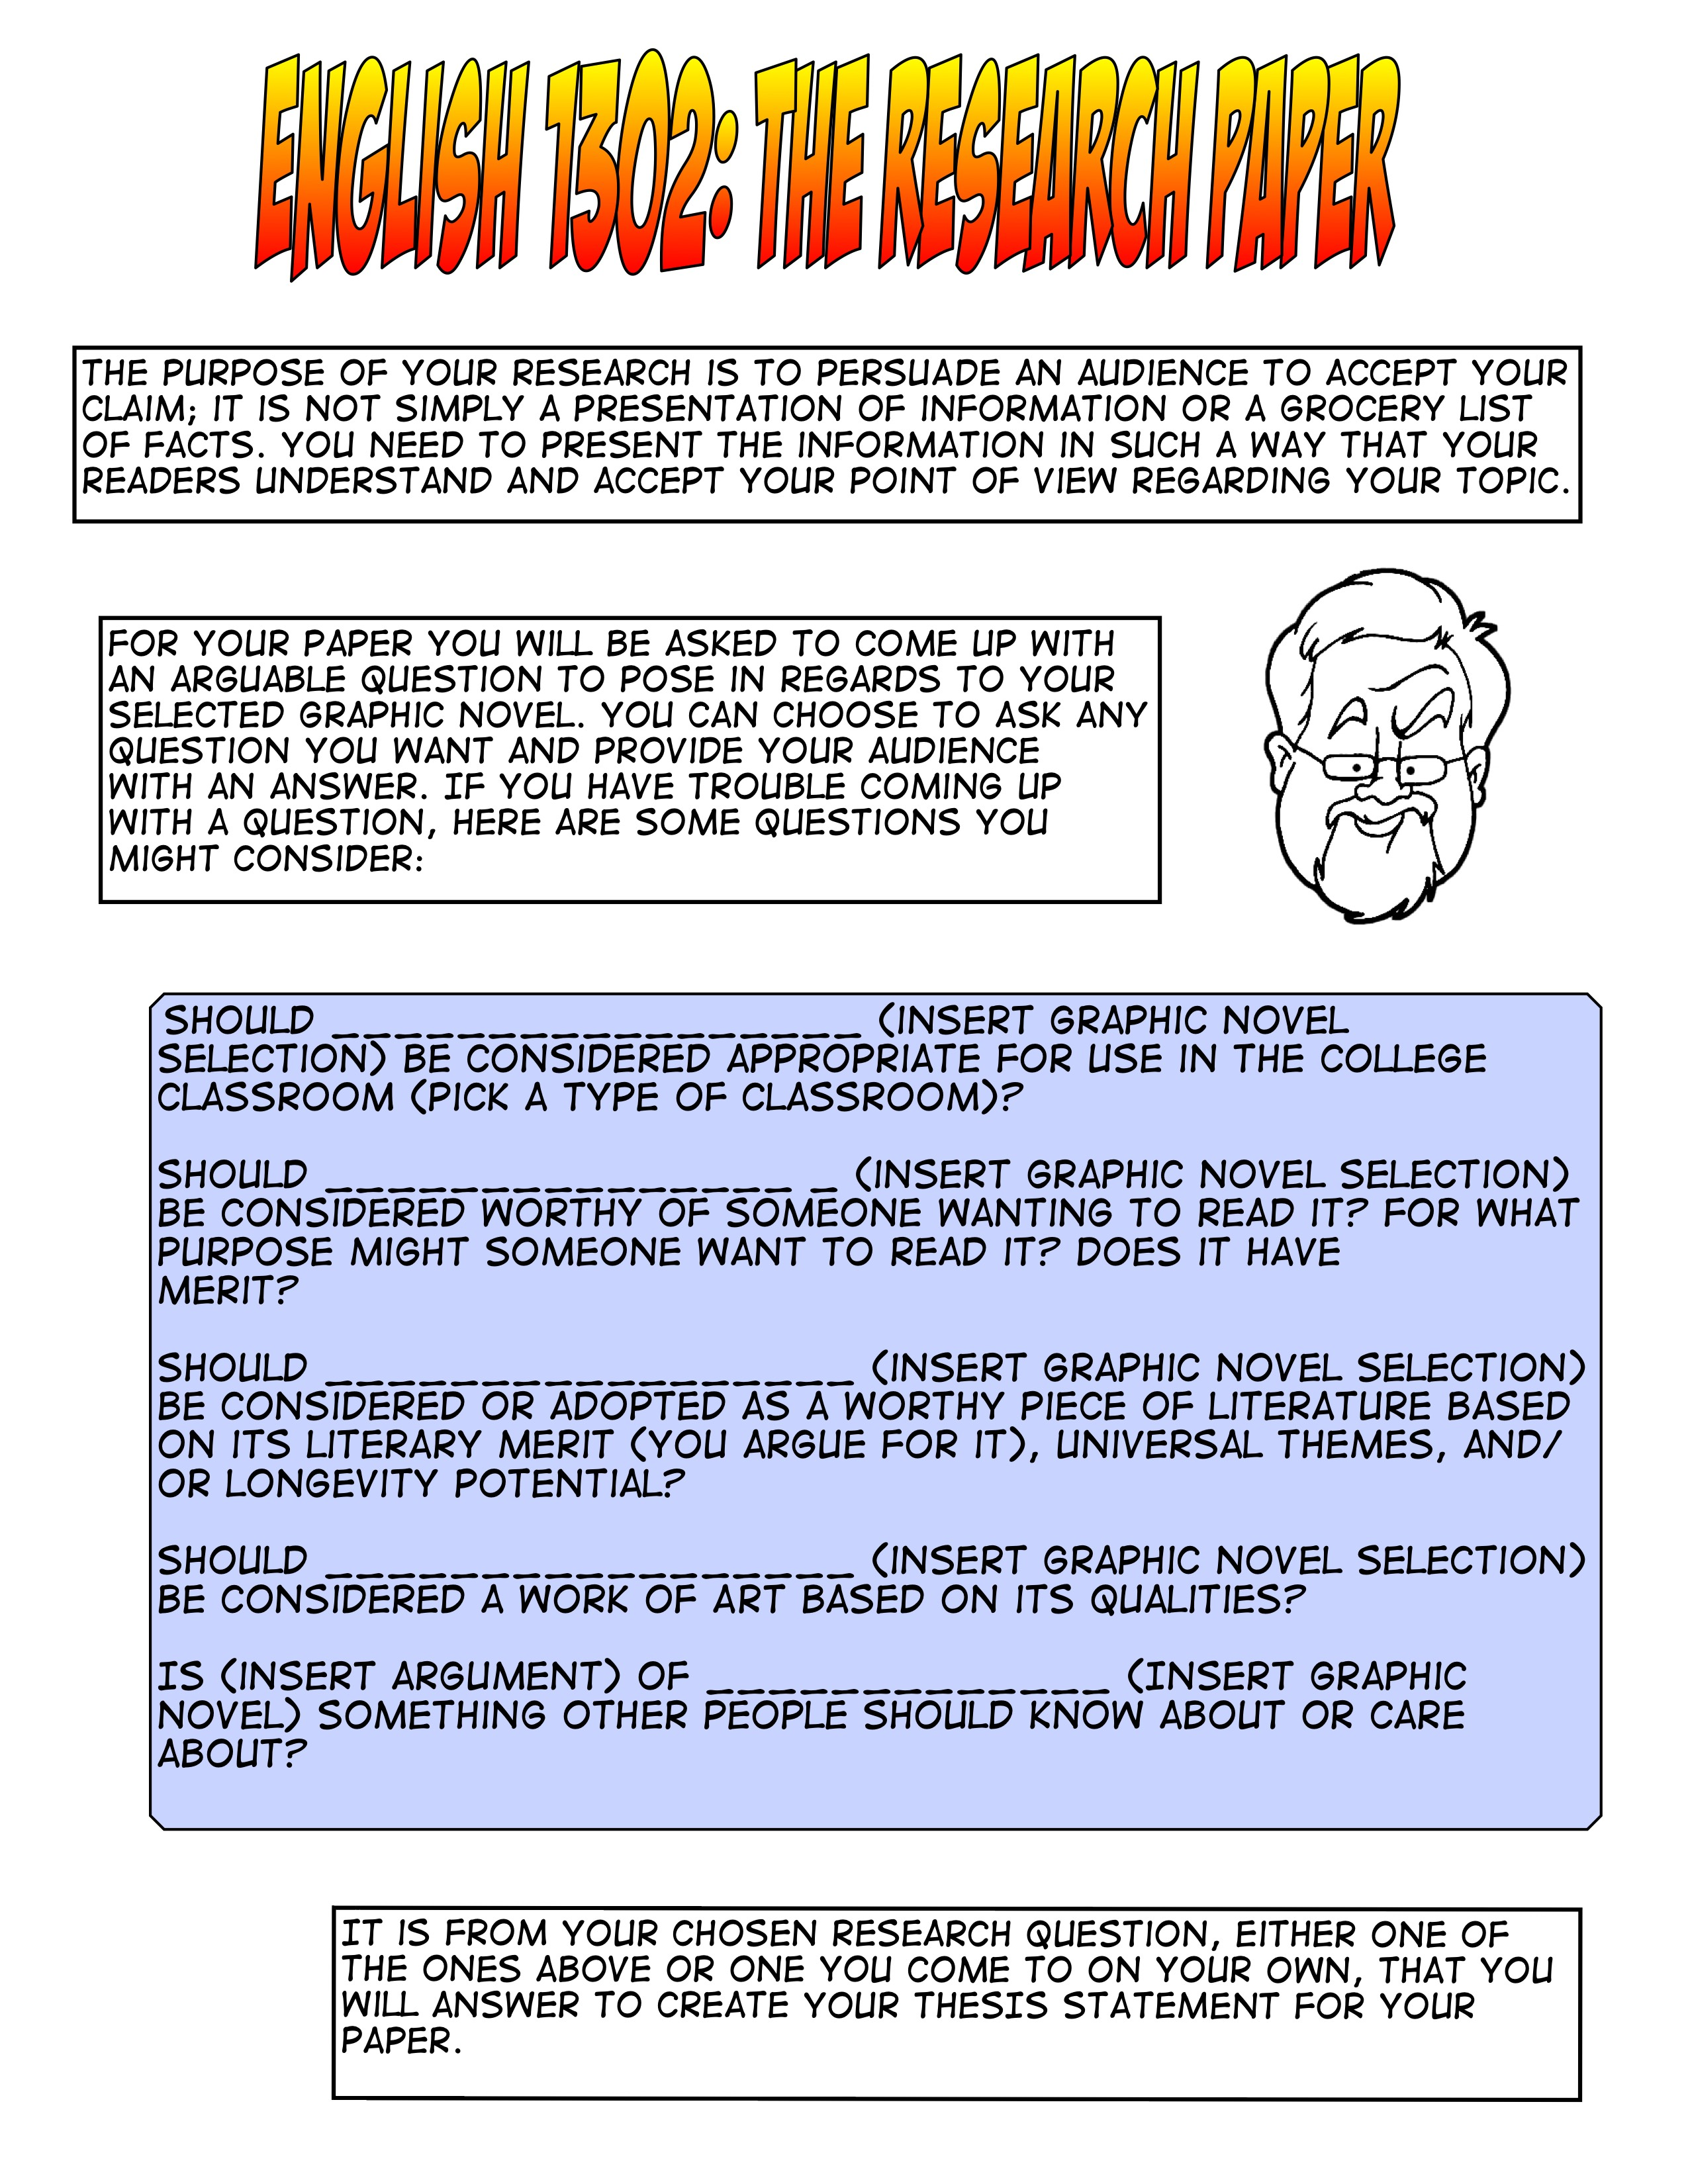 Research Paper On Graphic Novel – COMPOSITION 2